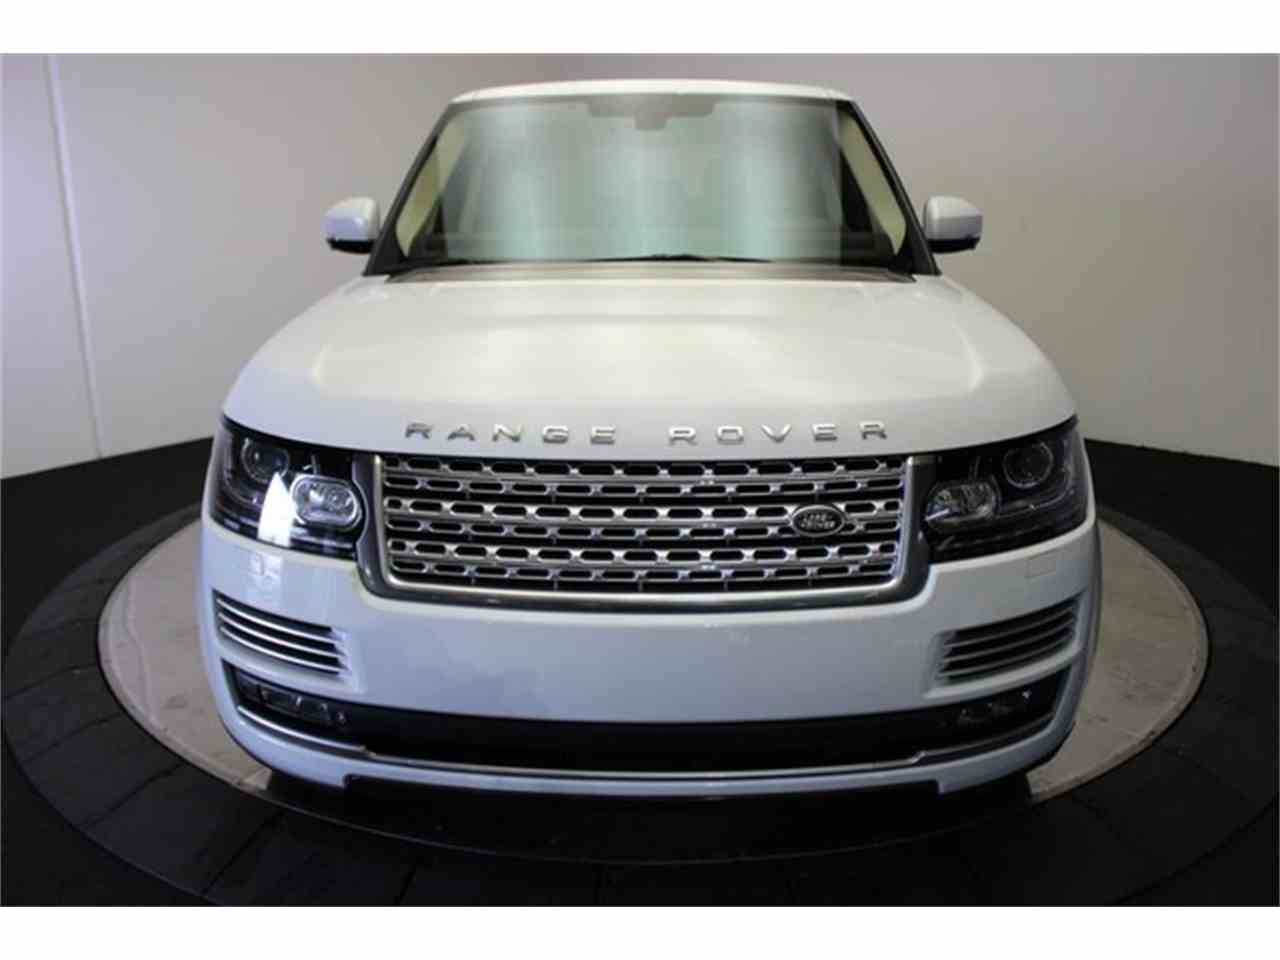 Large Picture of 2013 Land Rover Range Rover located in California - $73,888.00 - KHXU